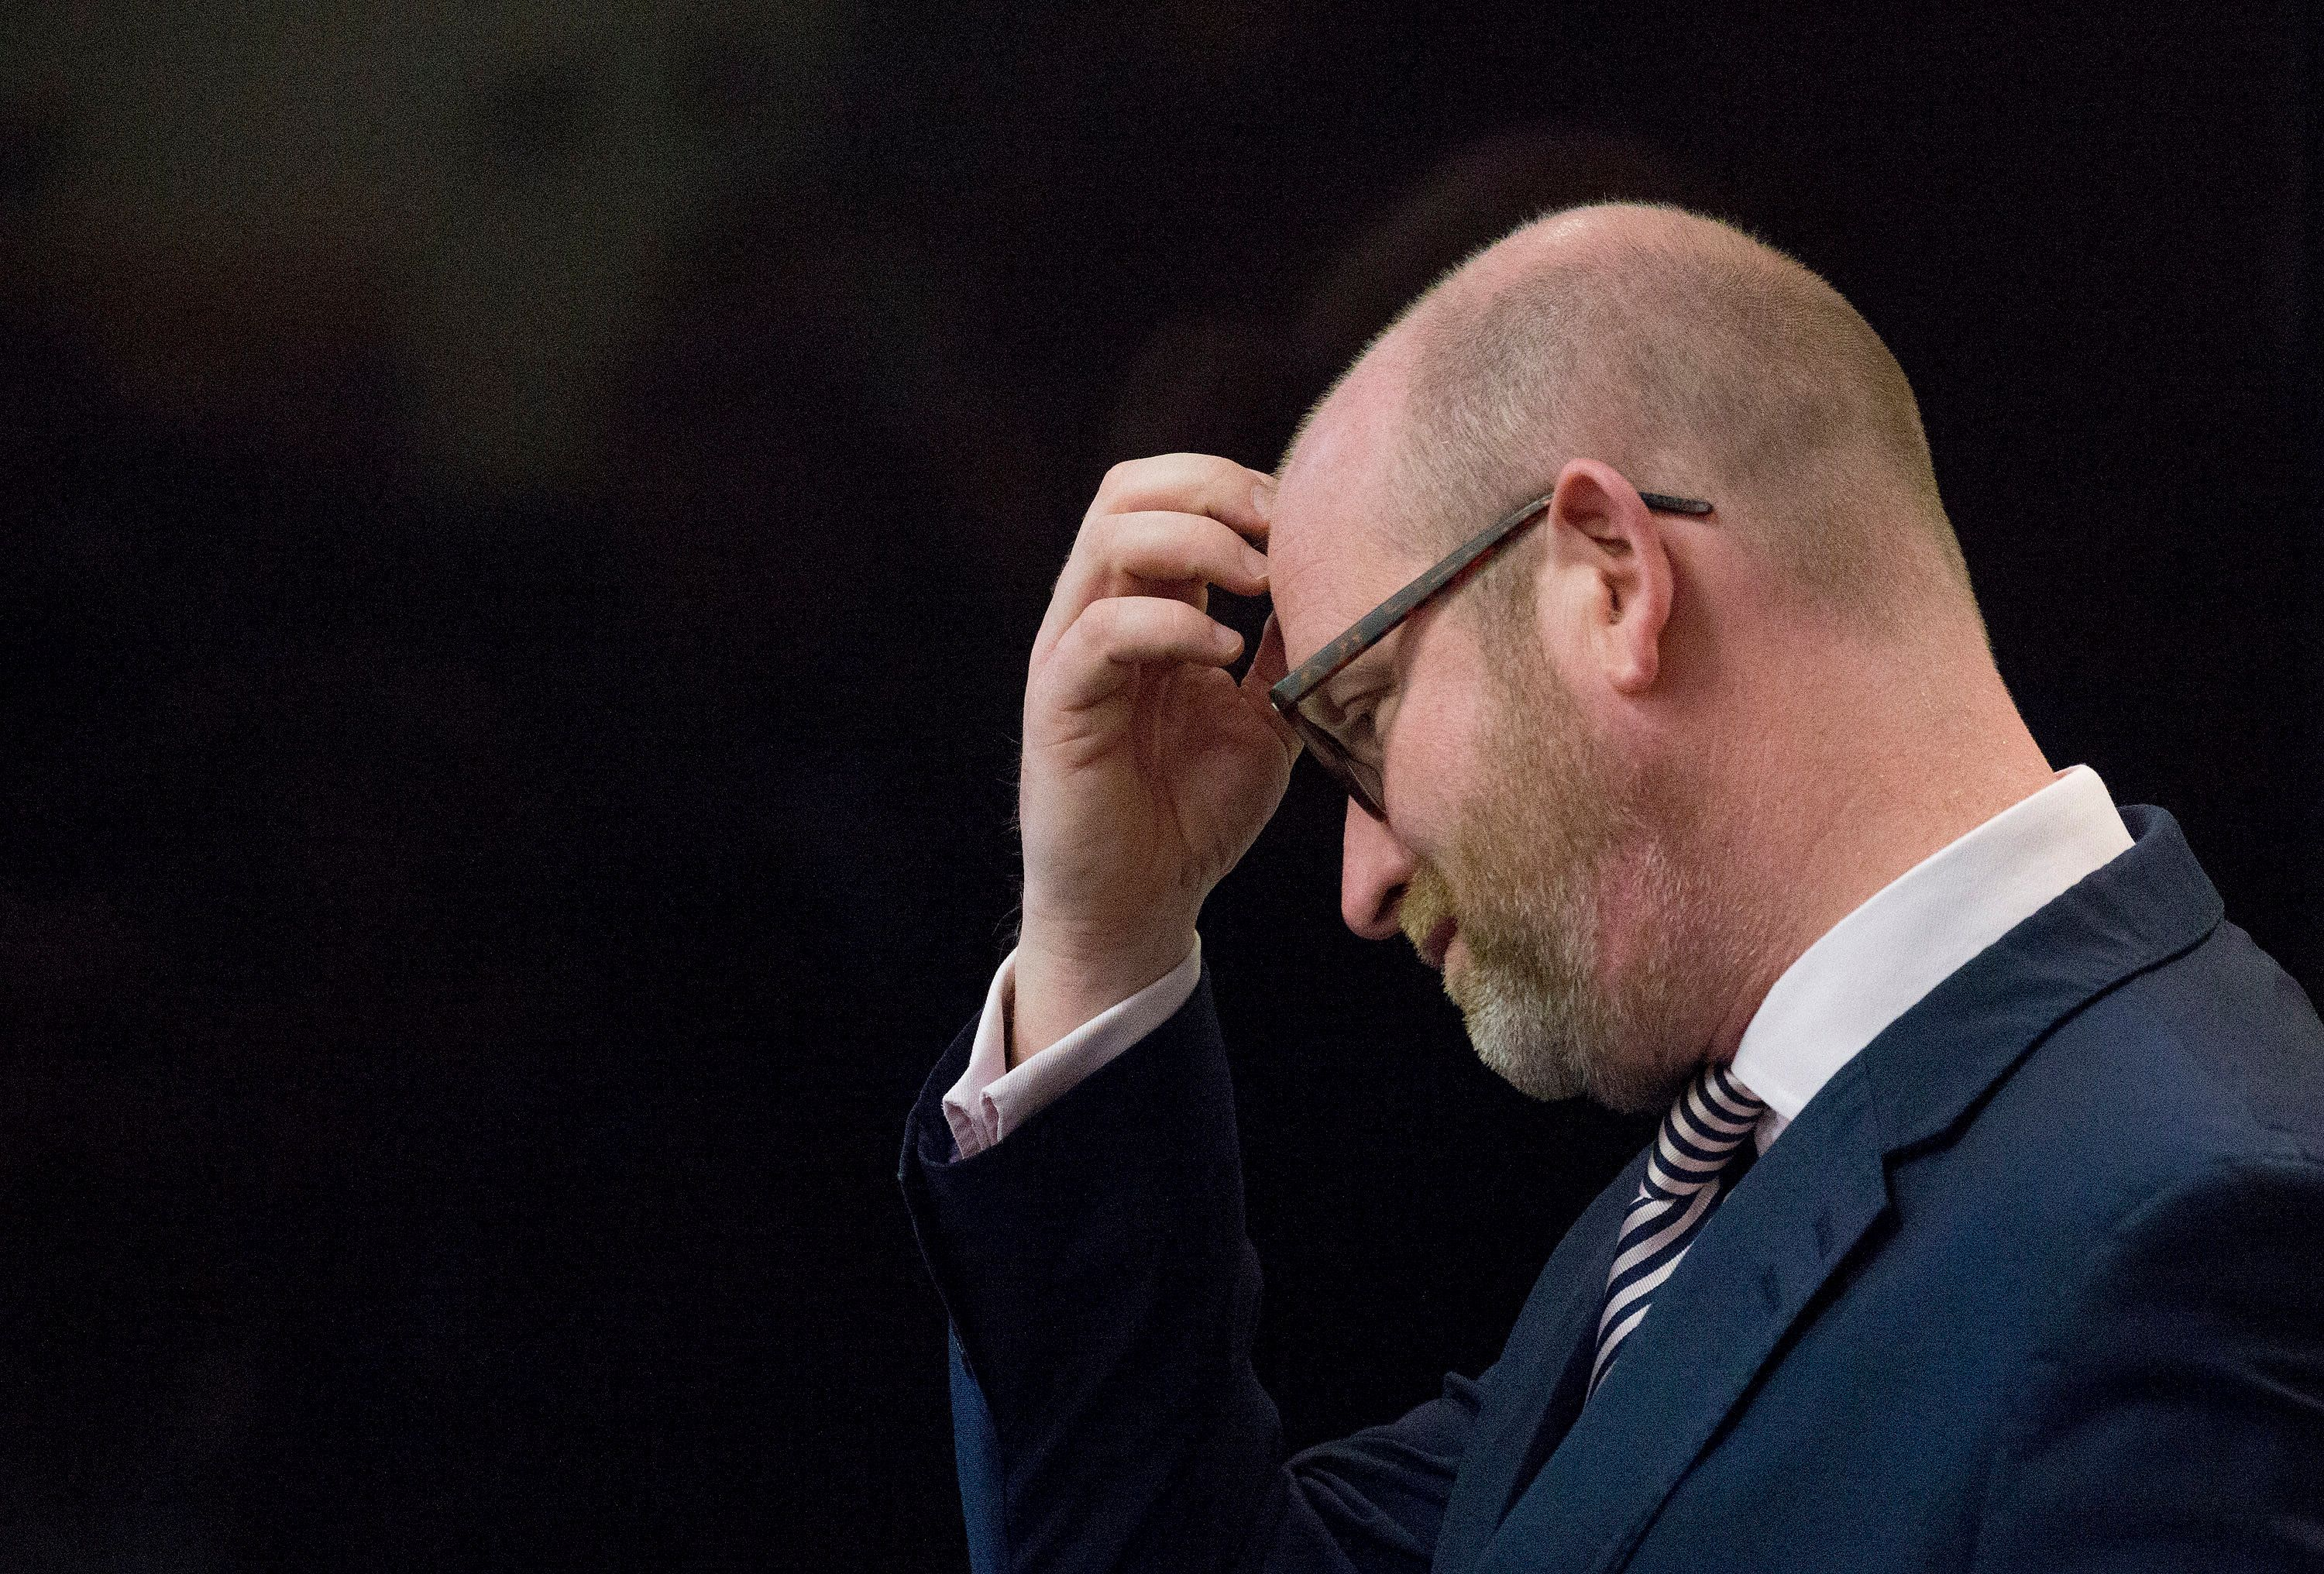 WATCH: UKIP Leader Paul Nuttall Heckled On The Campaign Trail In